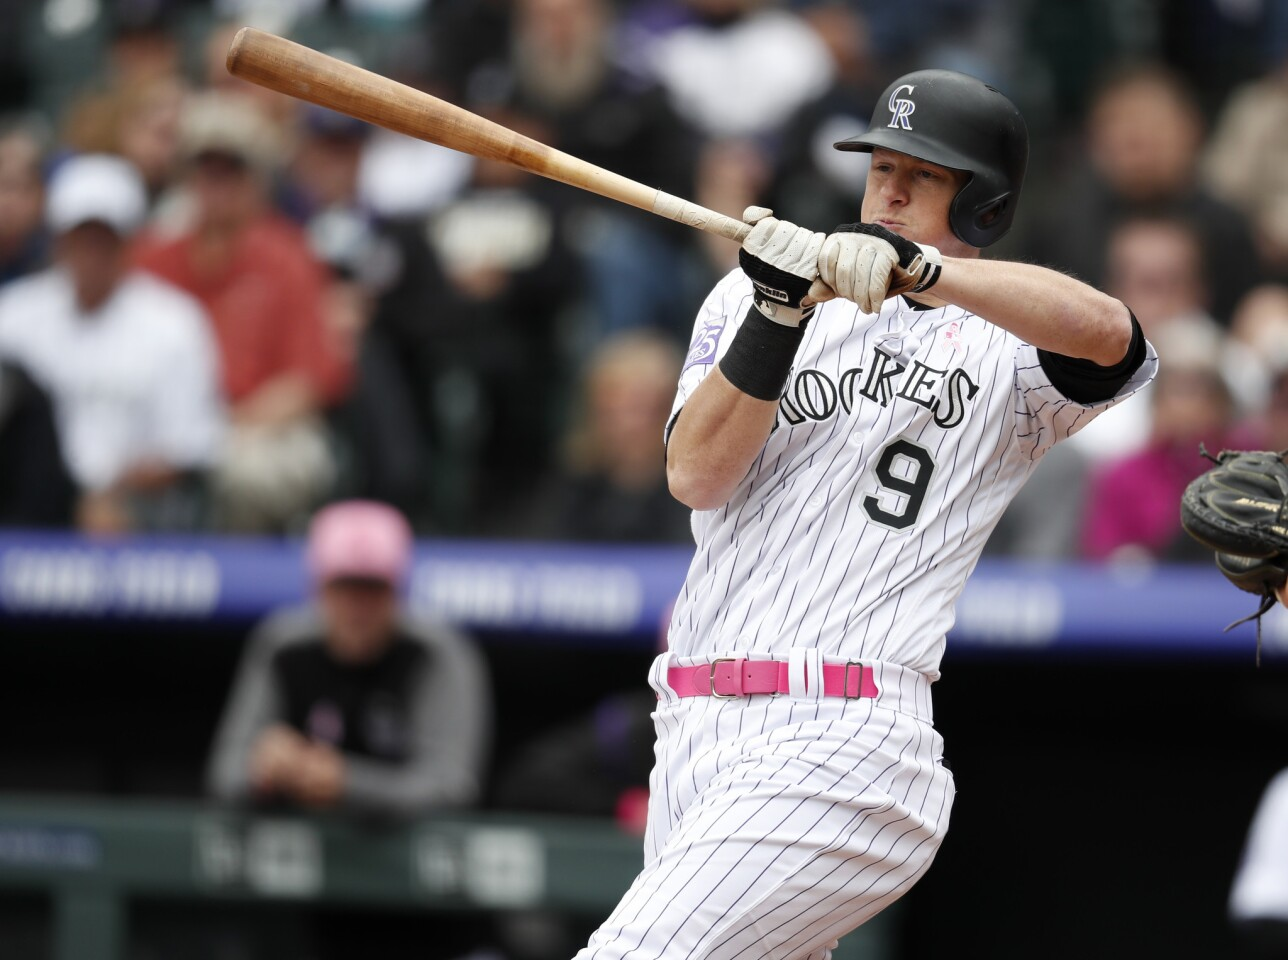 Colorado Rockies' DJ LeMahieu strikes out while trying to check his swing on a pitch from Milwaukee Brewers starting pitcher Freddy Peralta in the third inning of a baseball game Sunday, May 13, 2018, in Denver. (AP Photo/David Zalubowski)